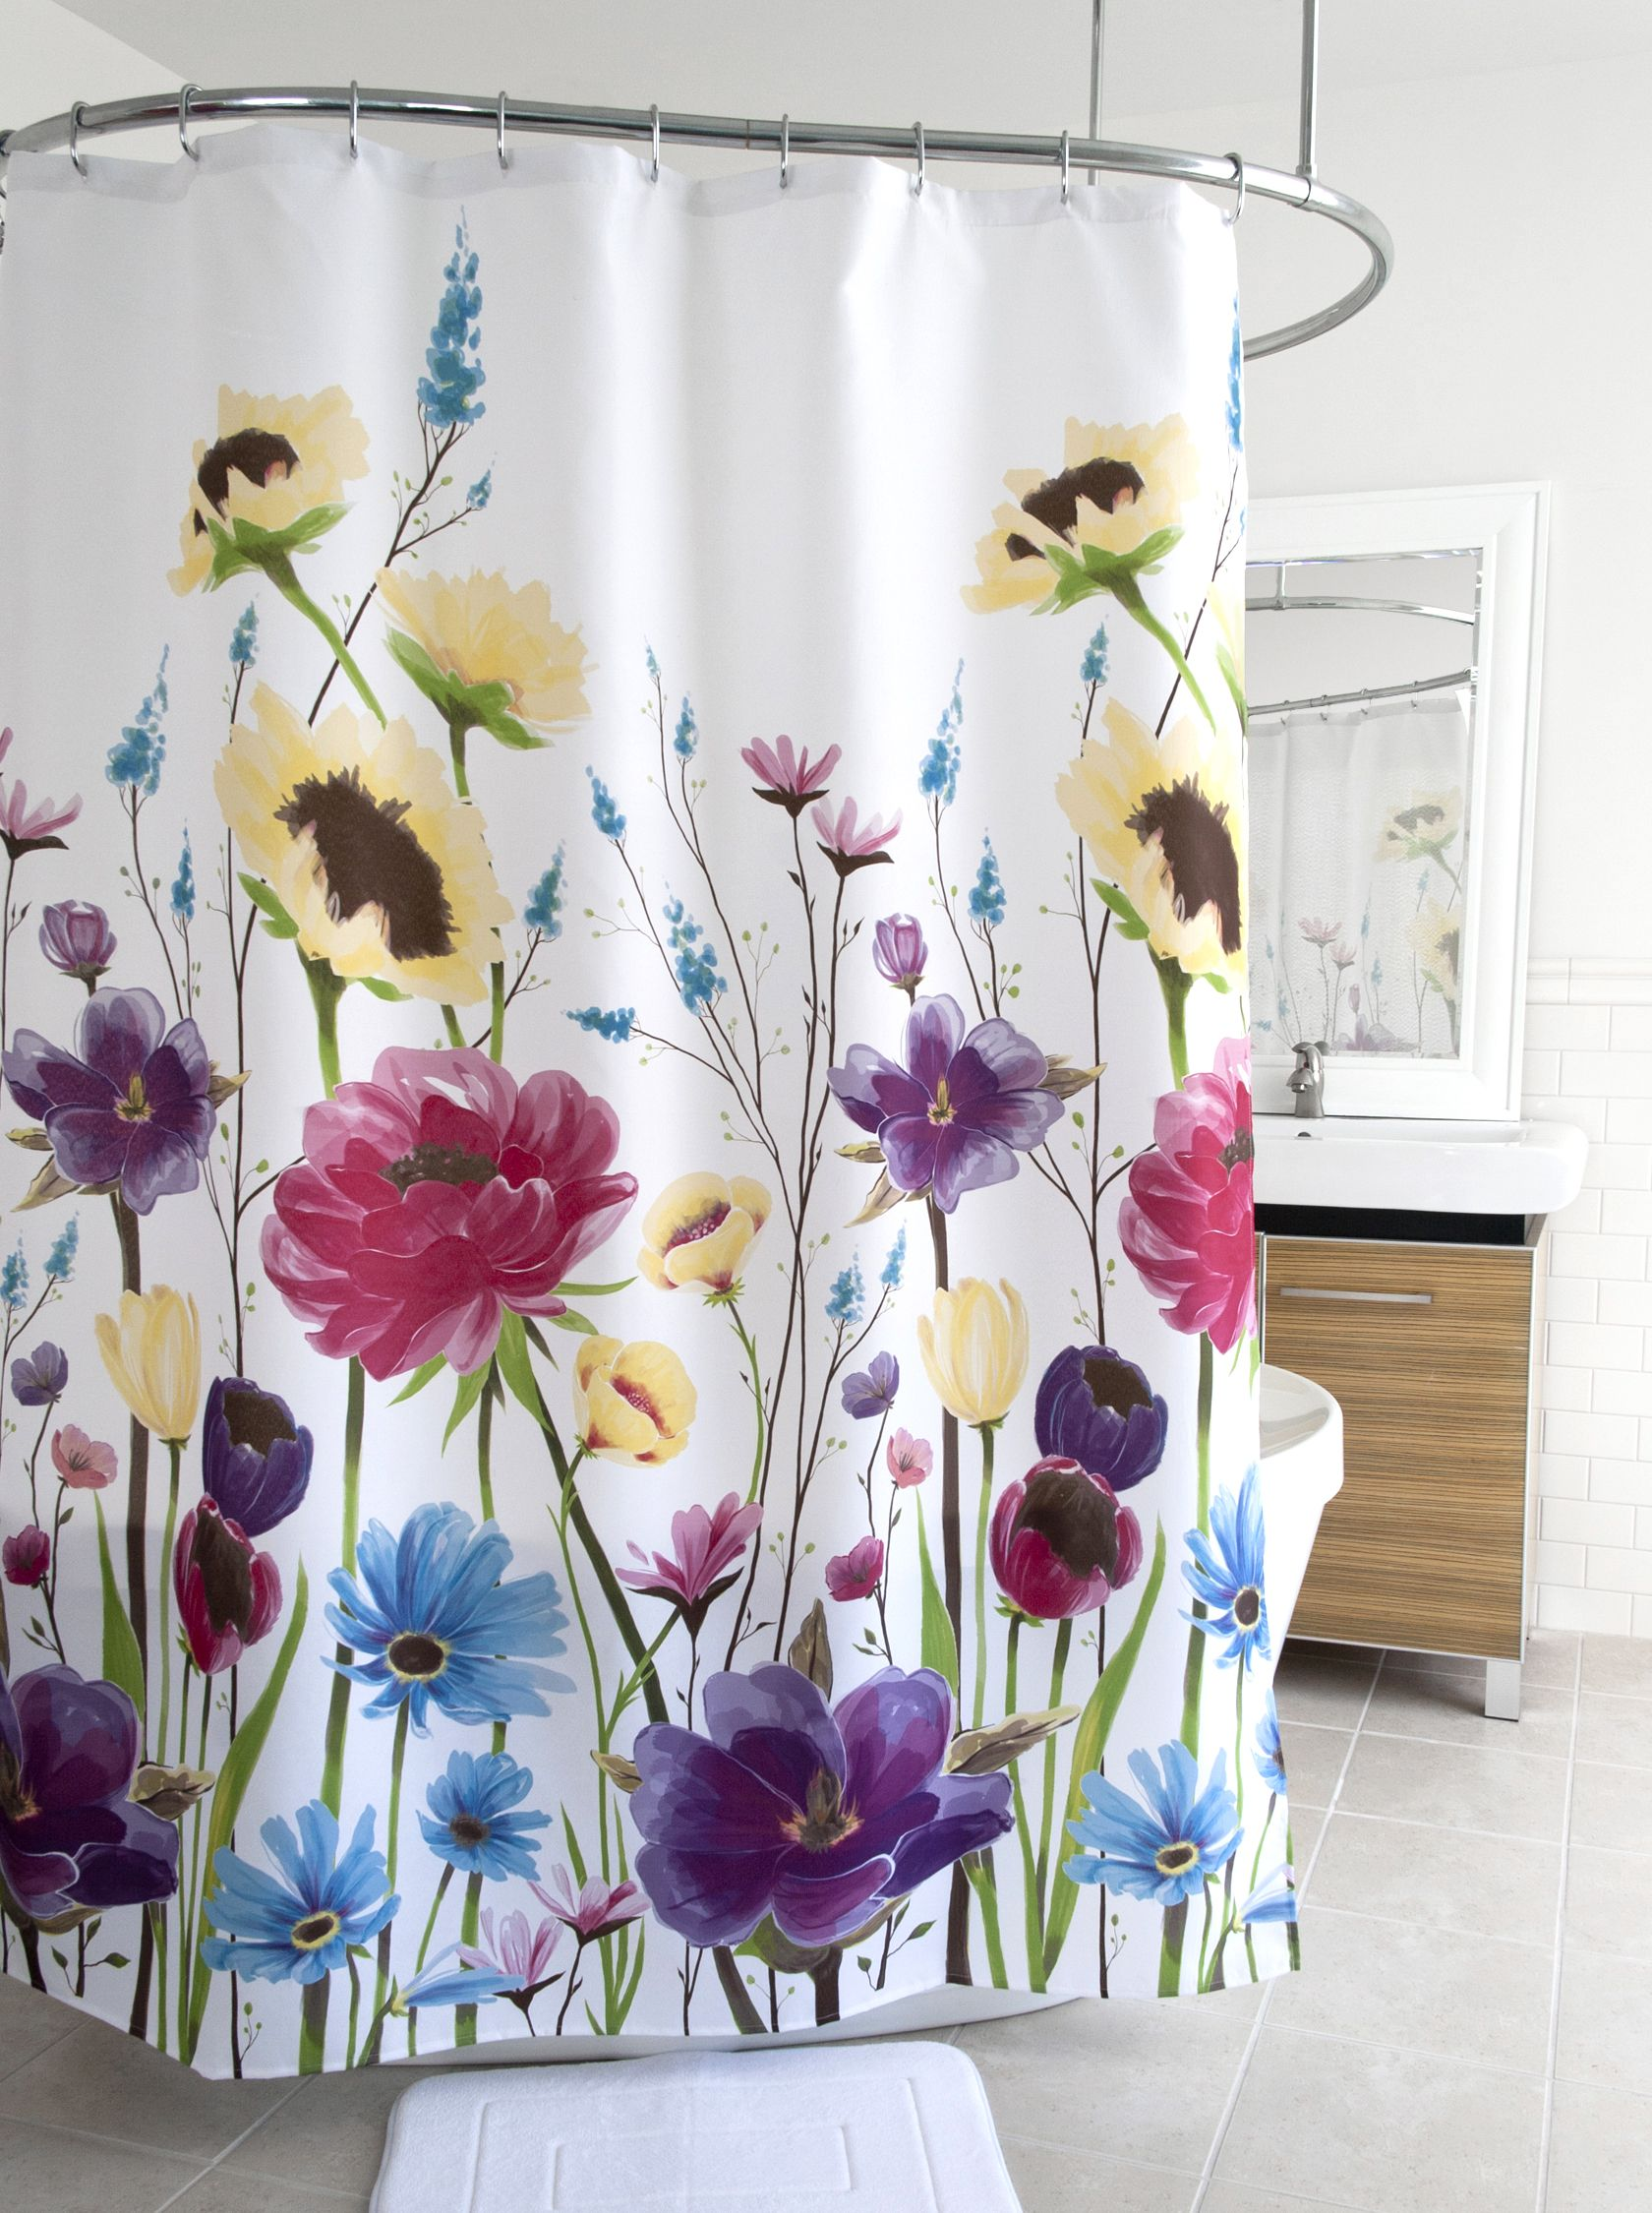 Home In 2020 Fabric Shower Curtains Curtains Vinyl Shower Curtains